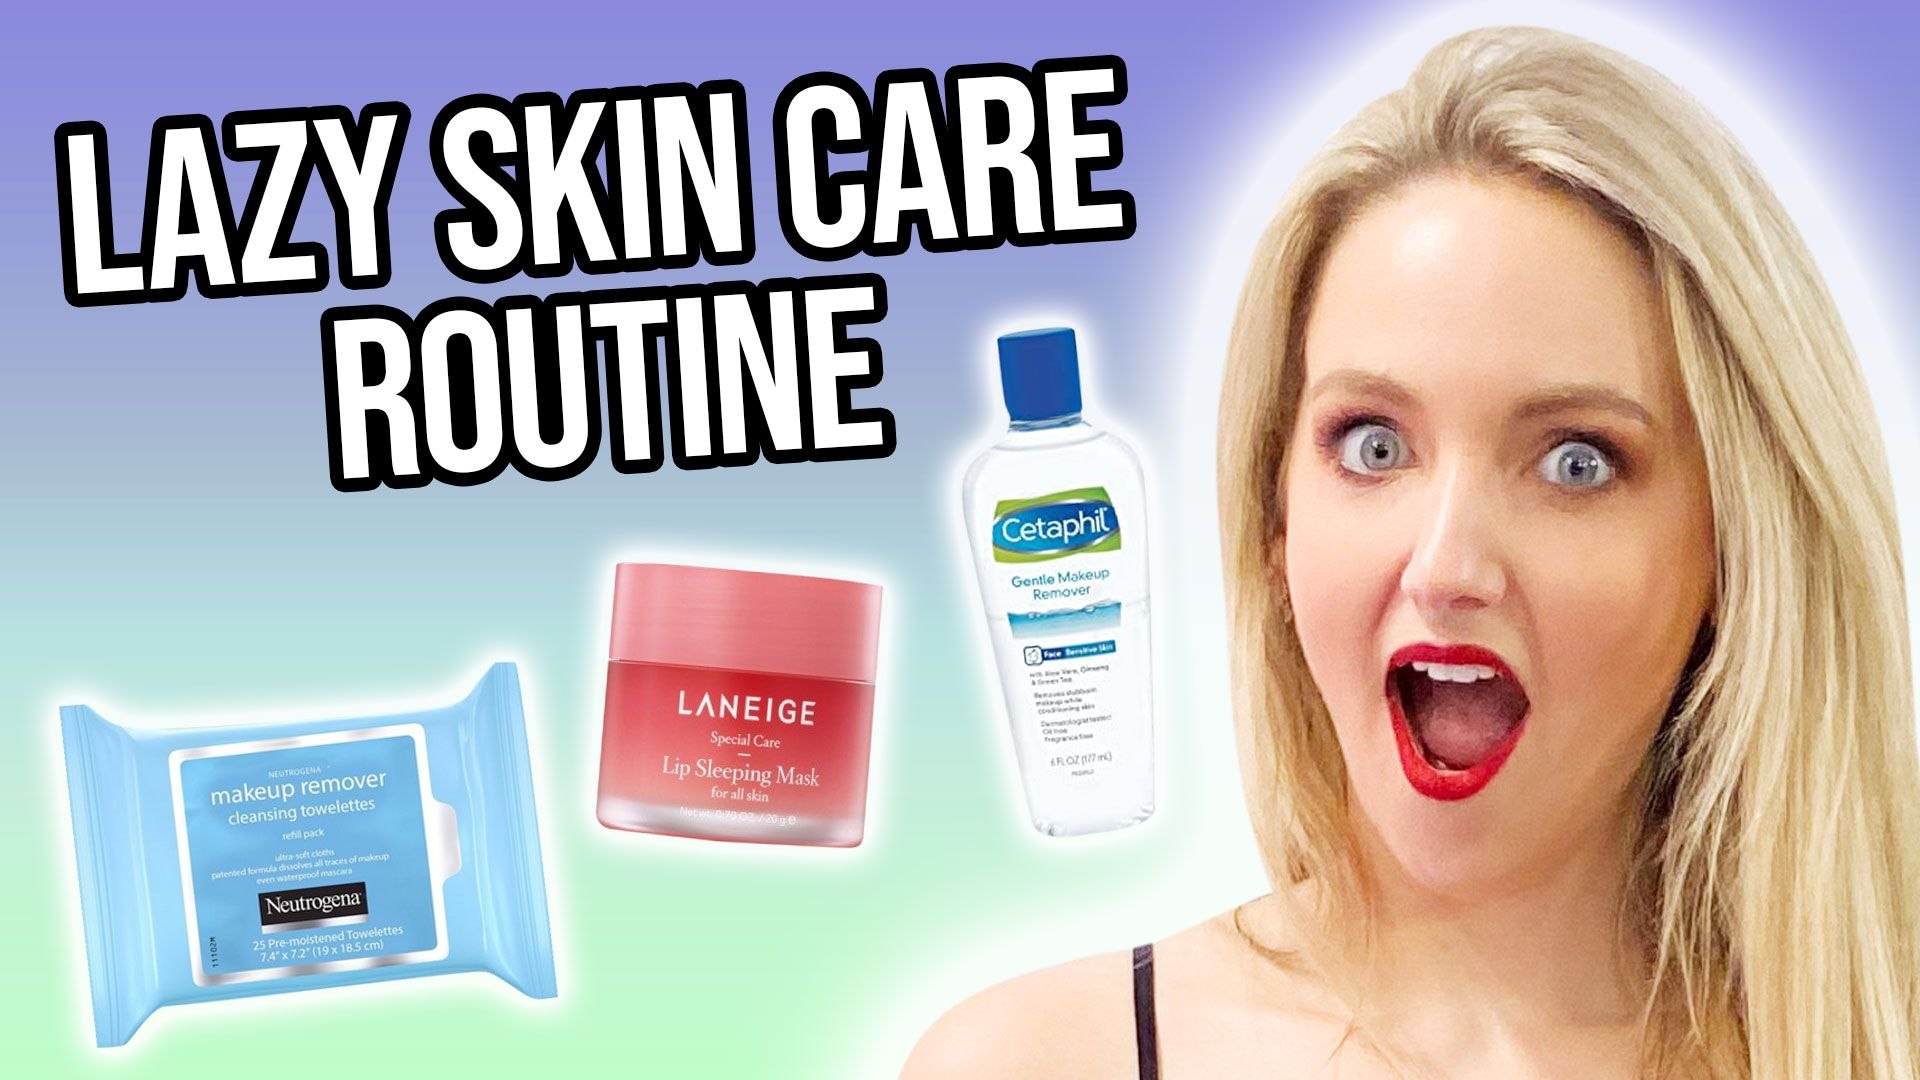 A Lazy Night Skincare Routine That WORKS!